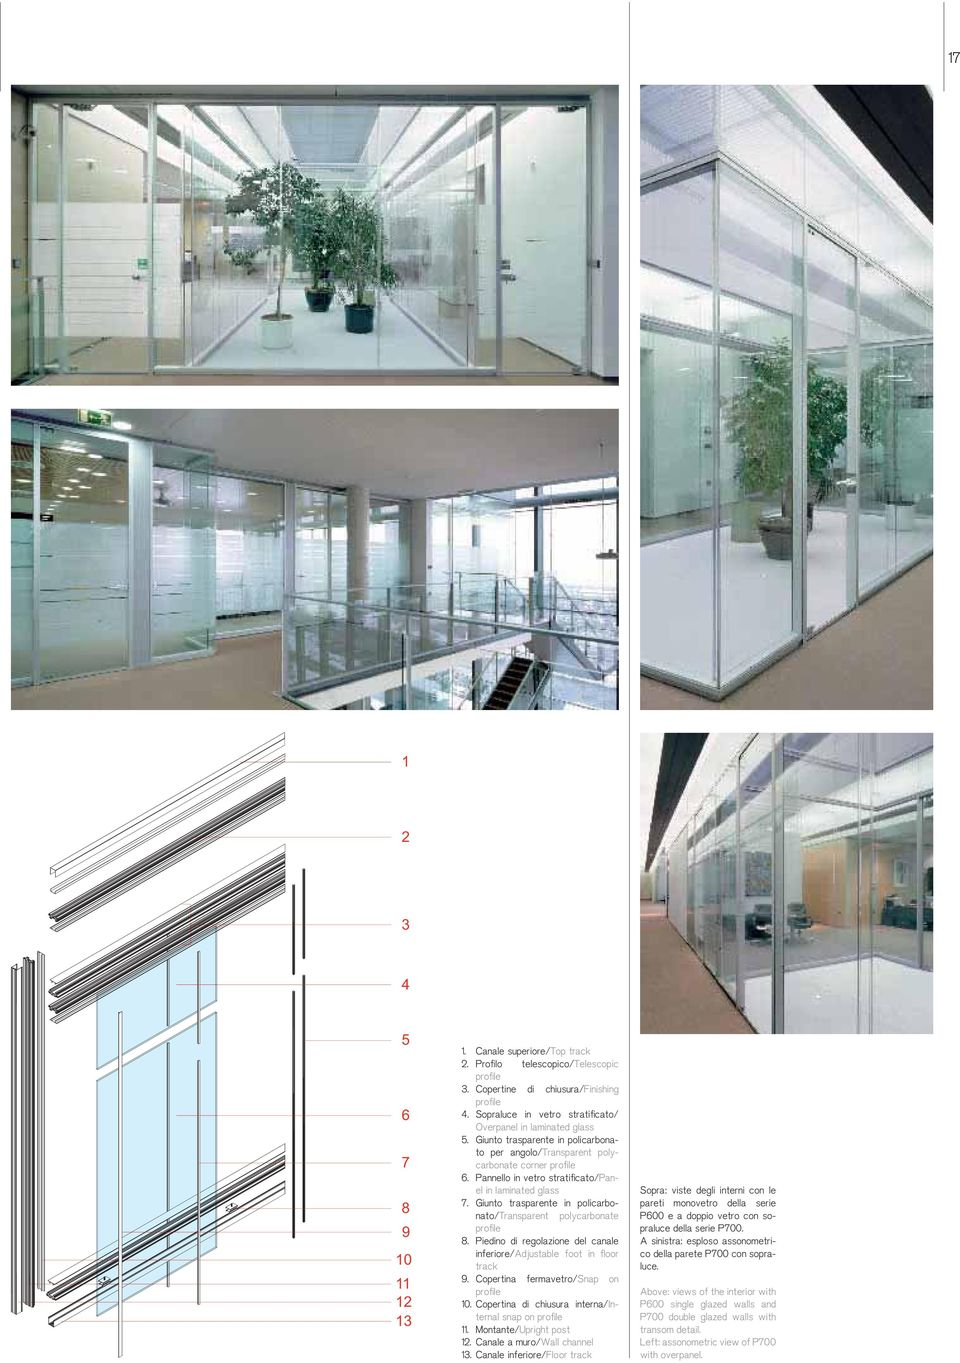 Pannello in vetro stratifi cato/panel in laminated glass 7. Giunto trasparente in policarbonato/transparent polycarbonate profi le 8.